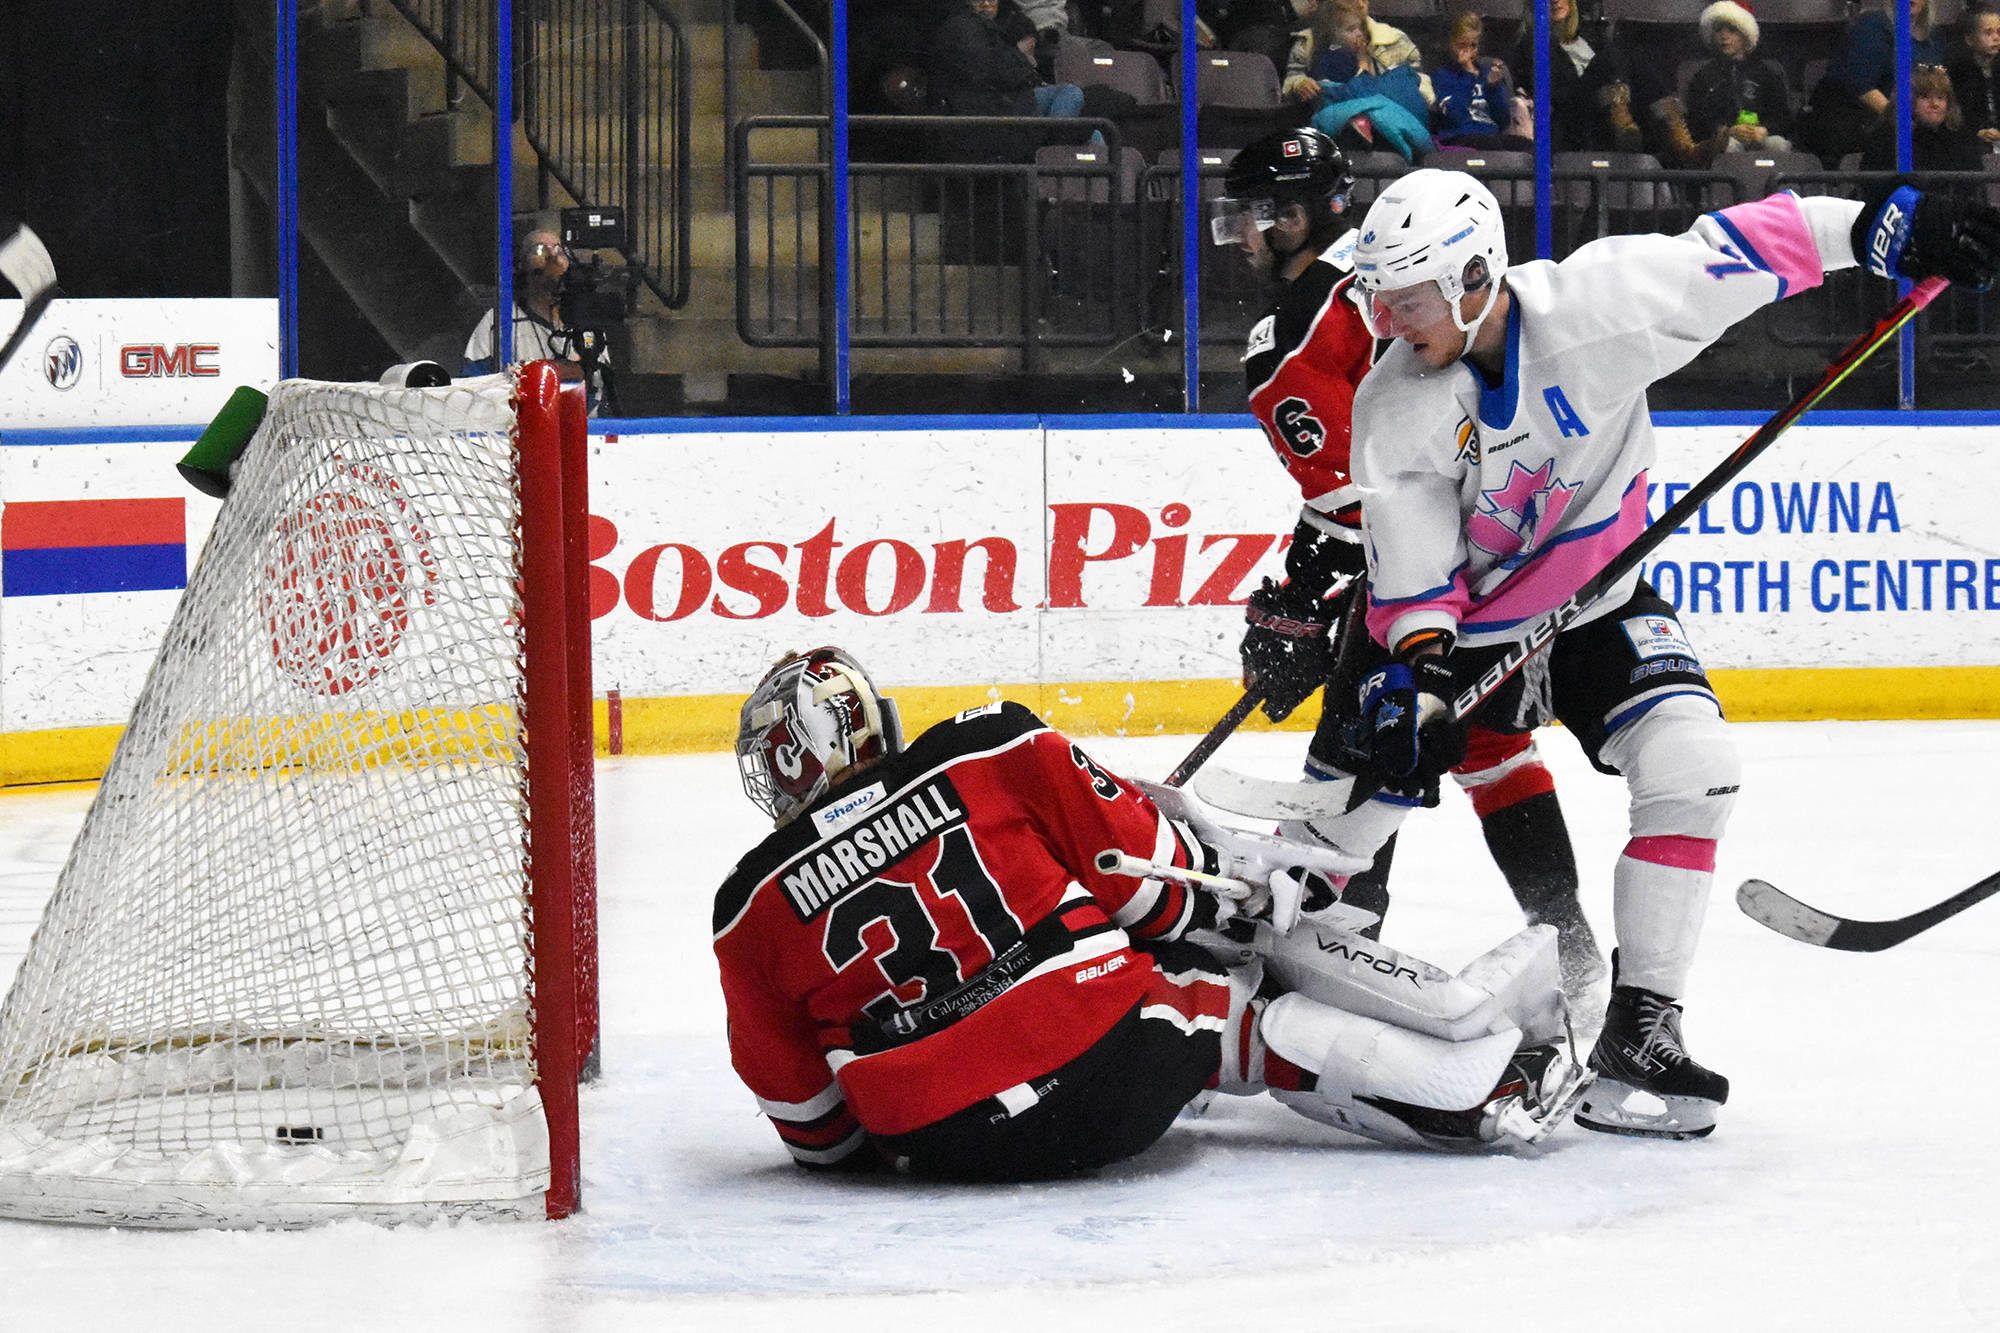 Jack Barnes, who was Cowichan Valley Capitals property from May 2020 until last week, scores a goal for the Penticton Vees during the 2019-20 BCHL season. (Brennan Phillips/Black Press)